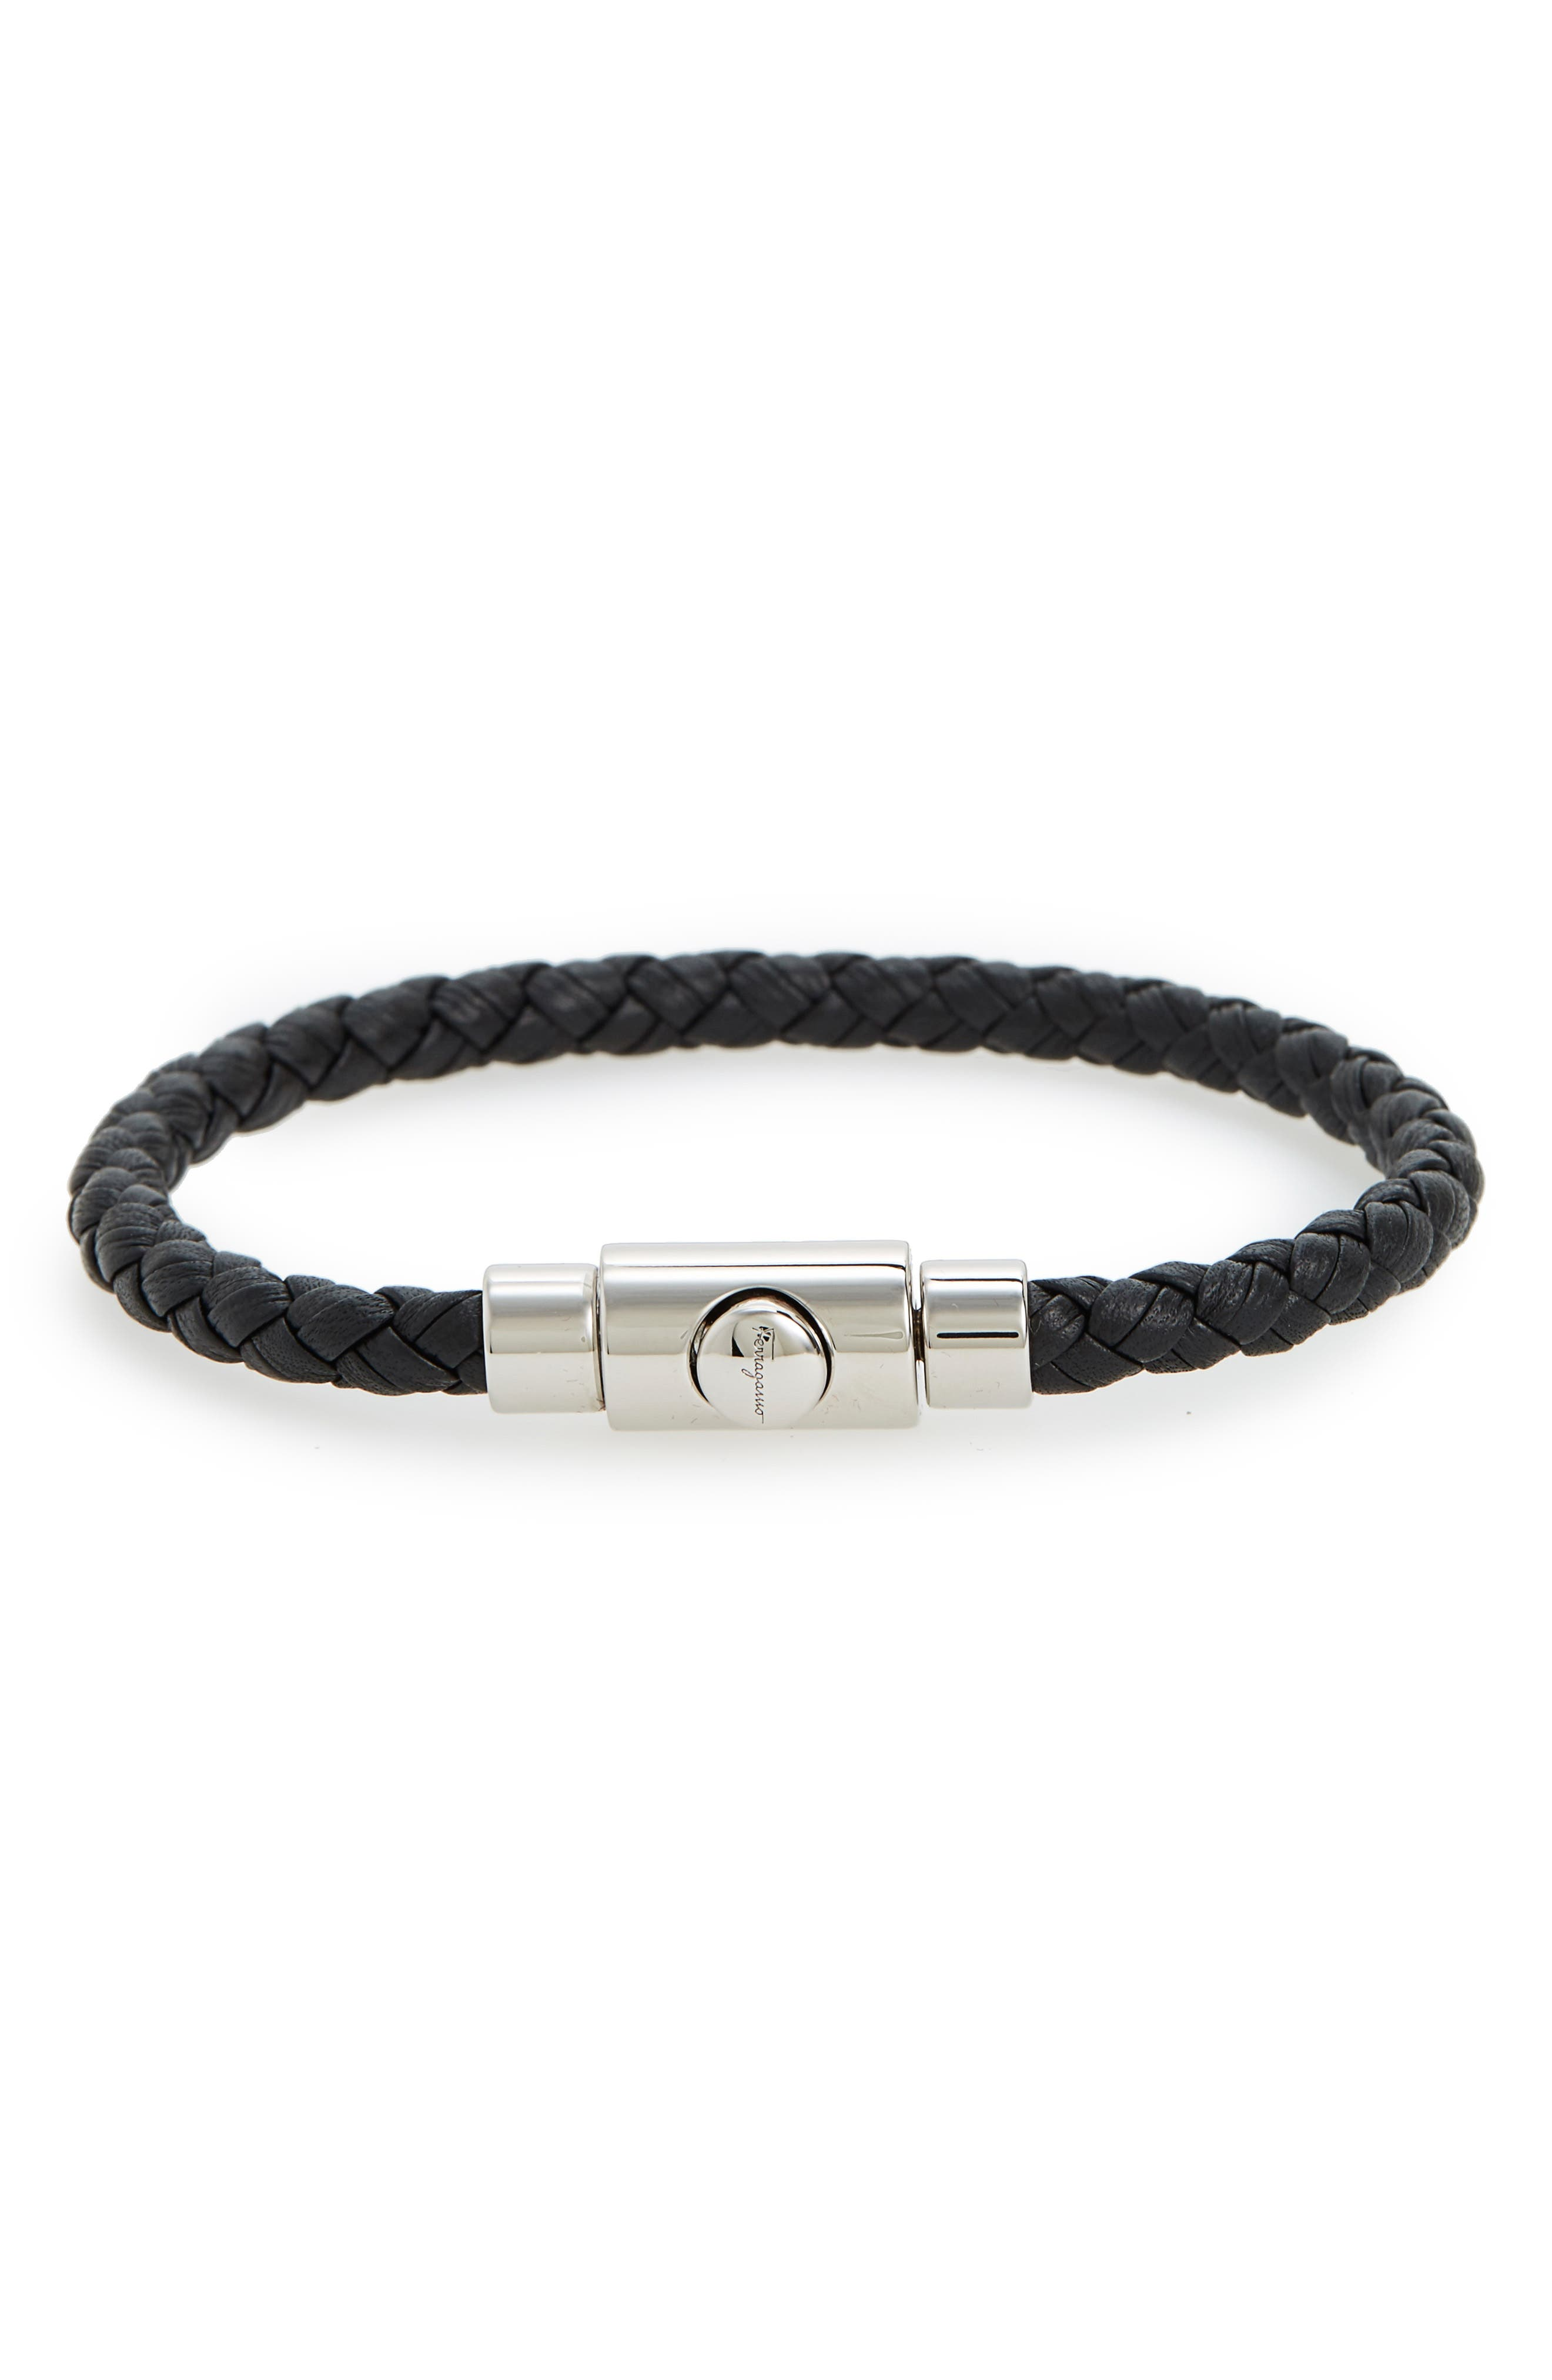 Salvatore Ferragamo Braided Leather Bracelet